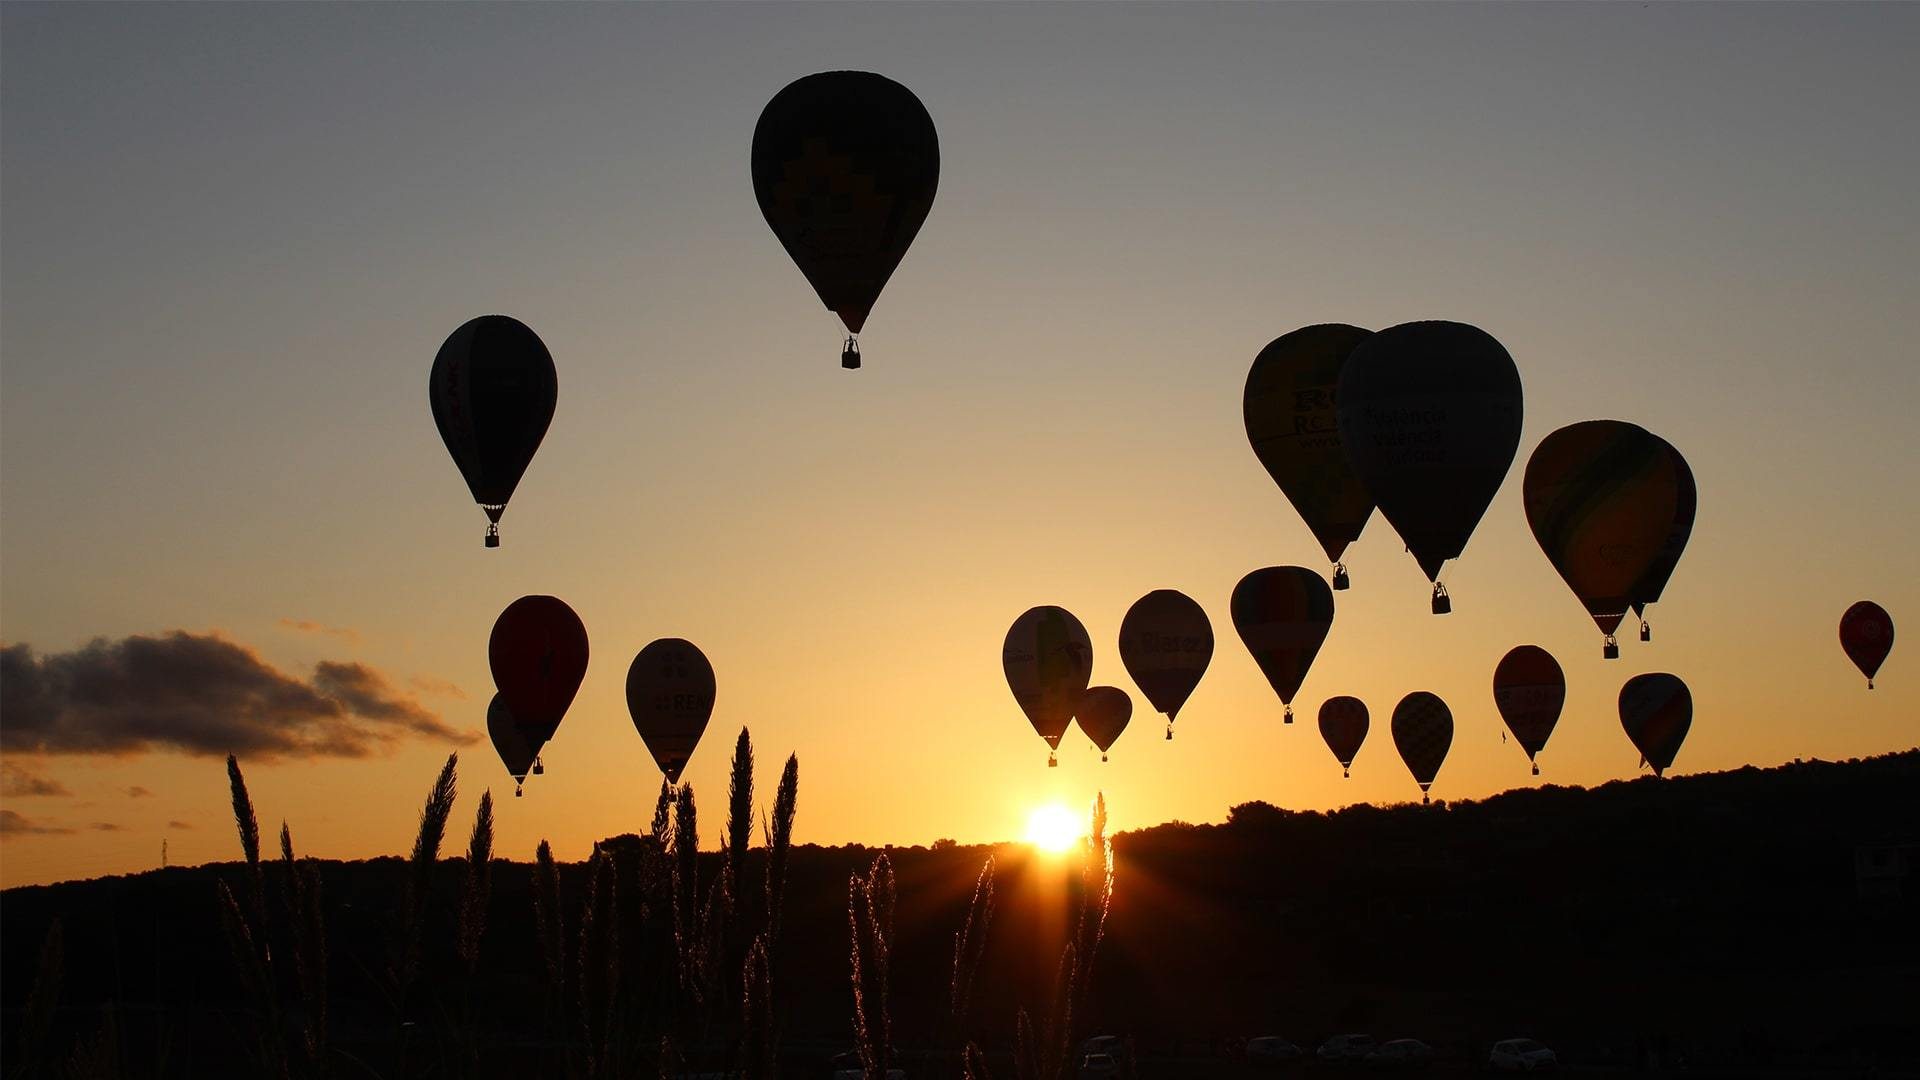 Beautiful sunrise hot air balloons mallorca photo Adele Chretien min